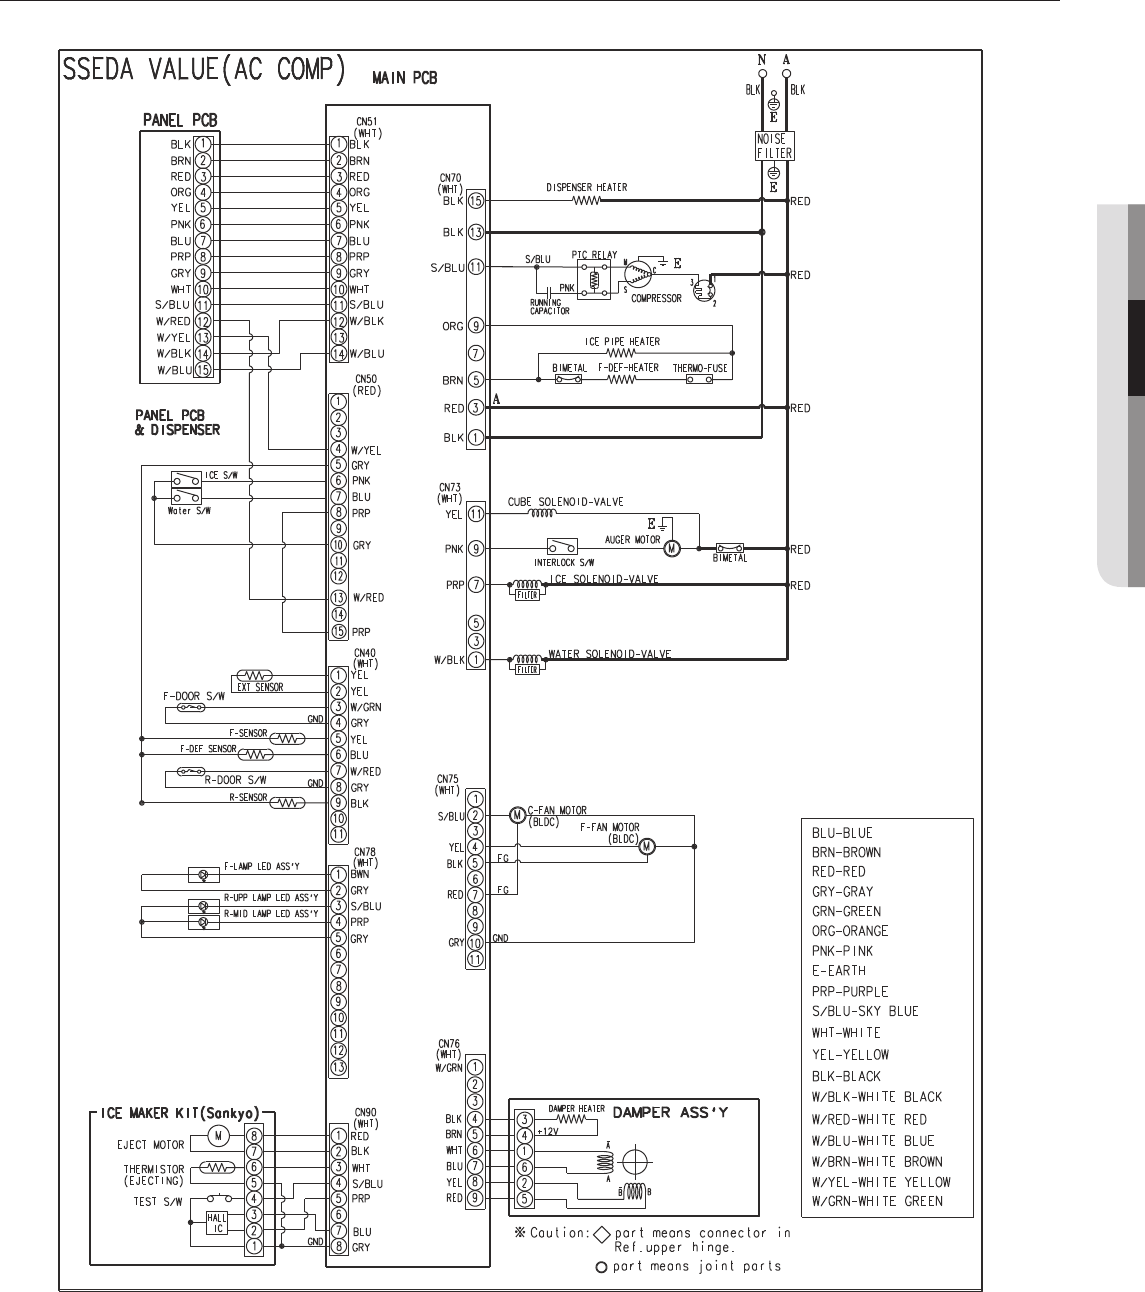 21aa6212 5c03 4539 ac02 99a0885d5c5e bg1f page 31 of samsung refrigerator rs261mdwp user guide refrigerator wiring diagram pdf at alyssarenee.co